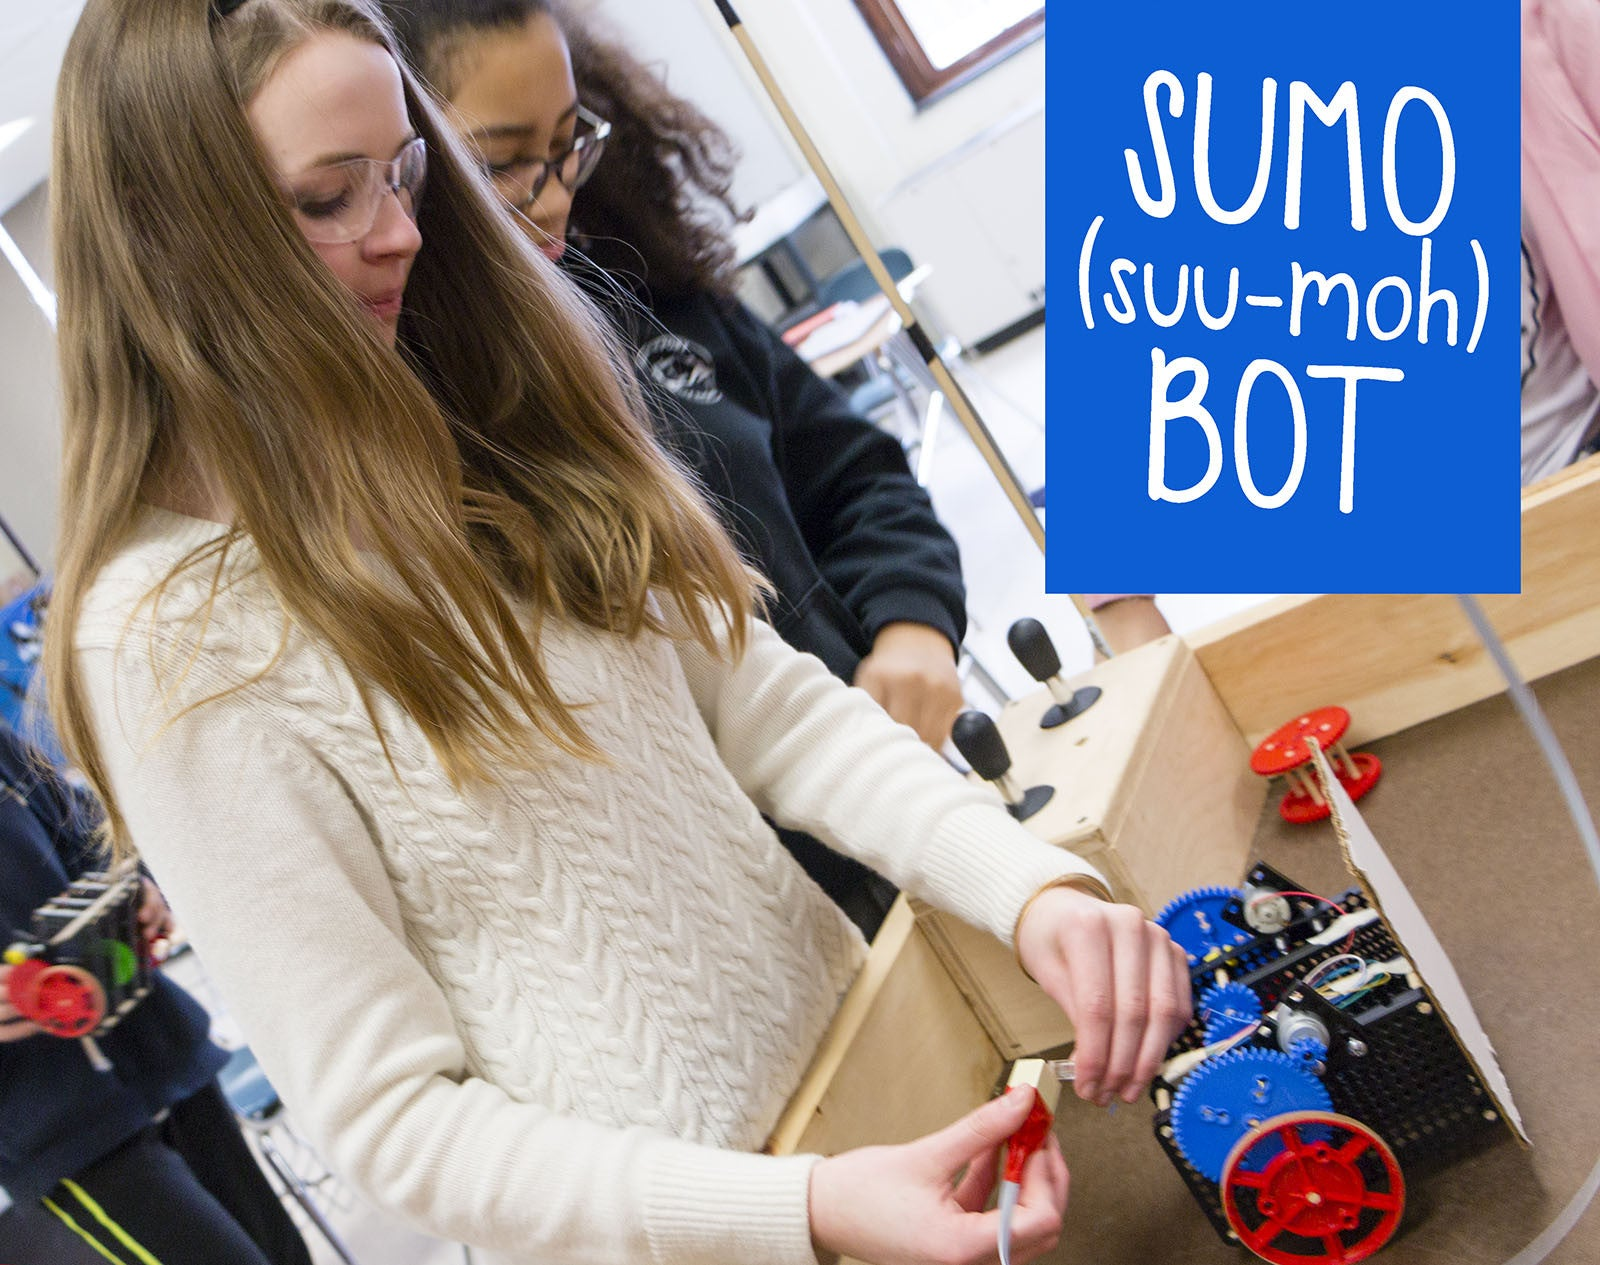 Sumo Bot Activity Documents